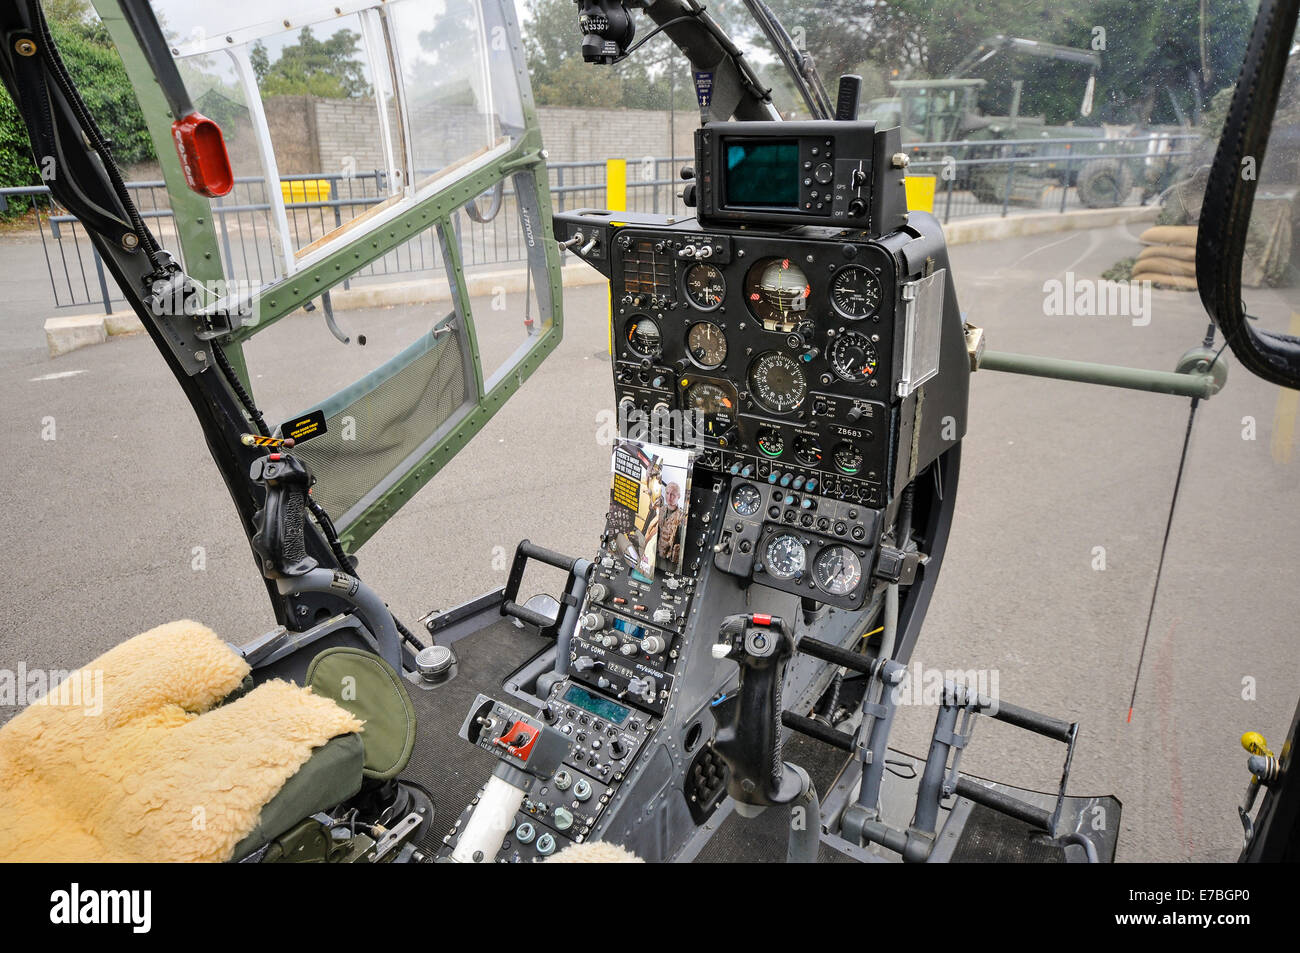 Cockpit of a Aerospaciale Gazelle military helicopter - Stock Image